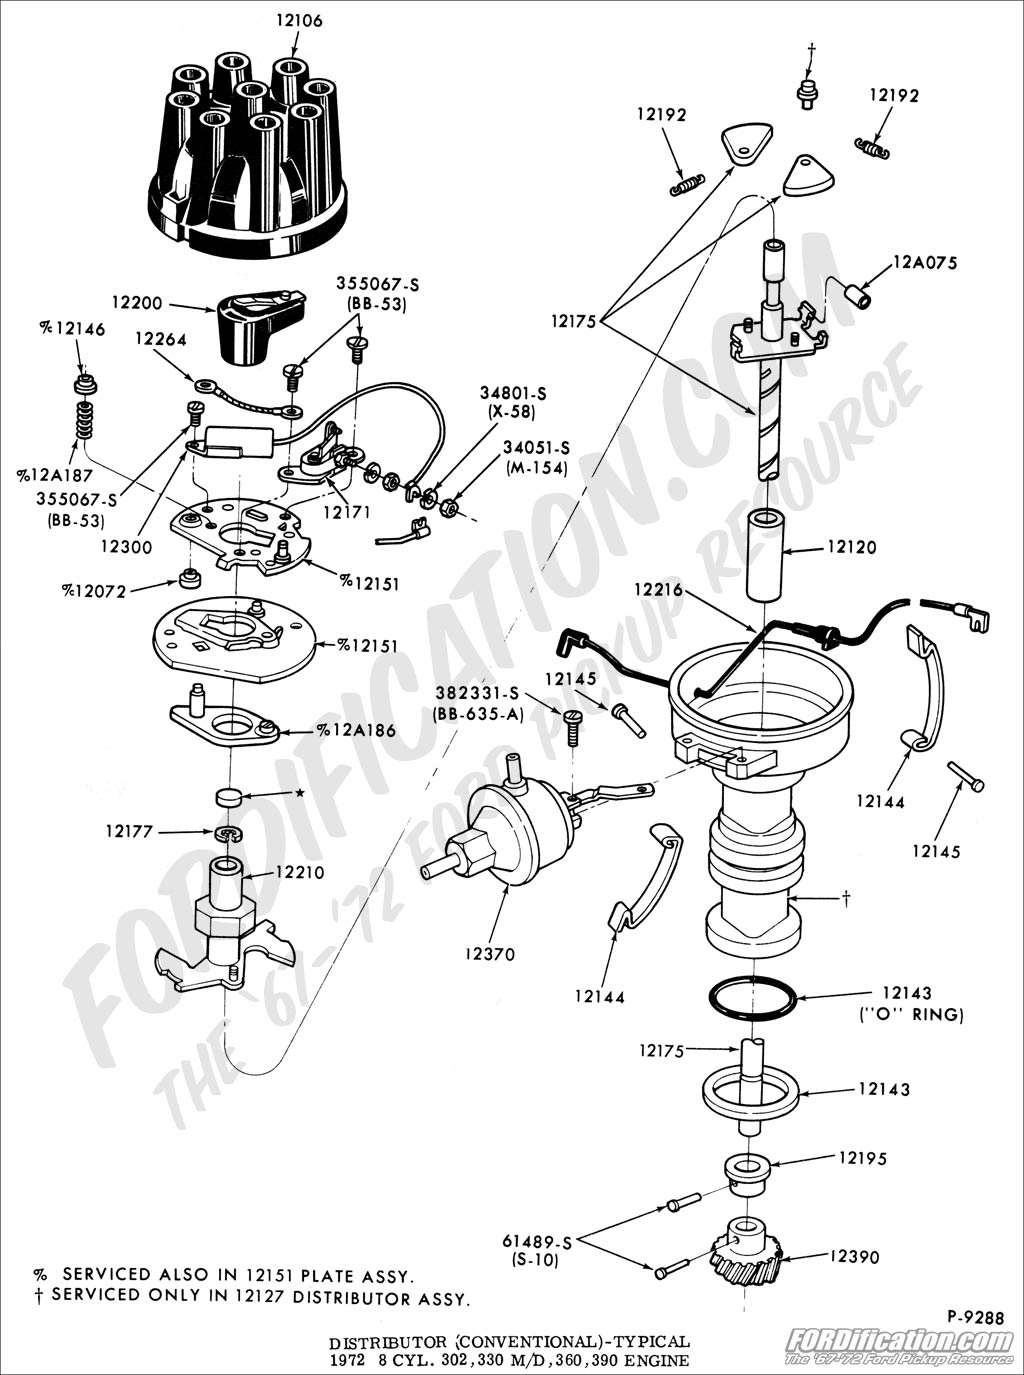 1973 Ford F100 Wiring Diagram Starting Know About Alternator Schematic Truck Technical Drawings And Schematics Section I Harness